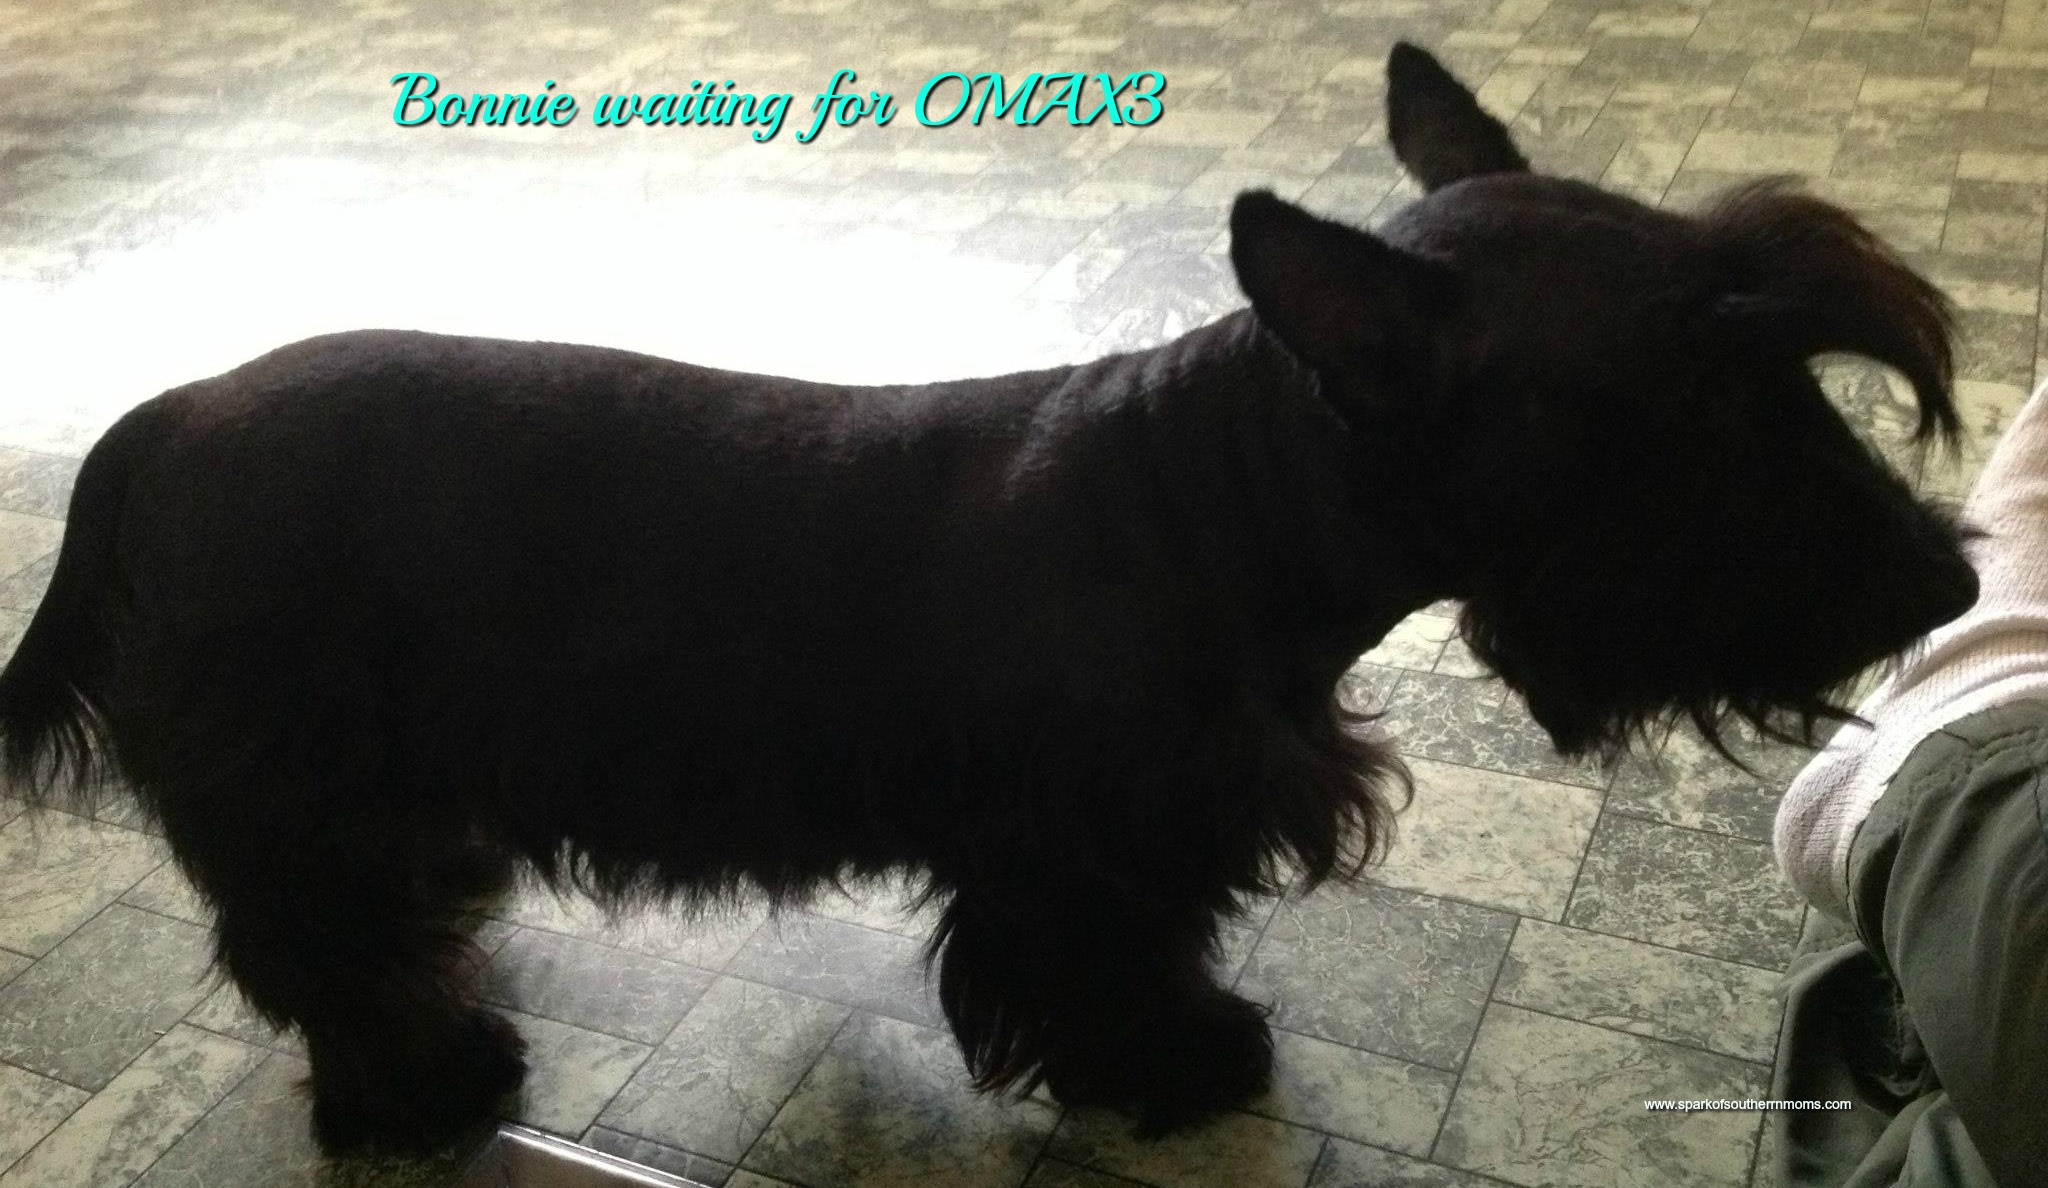 OMAX: Omega 3Fish Oil for Dogs: Bonnie waiting on her OMAX treat!